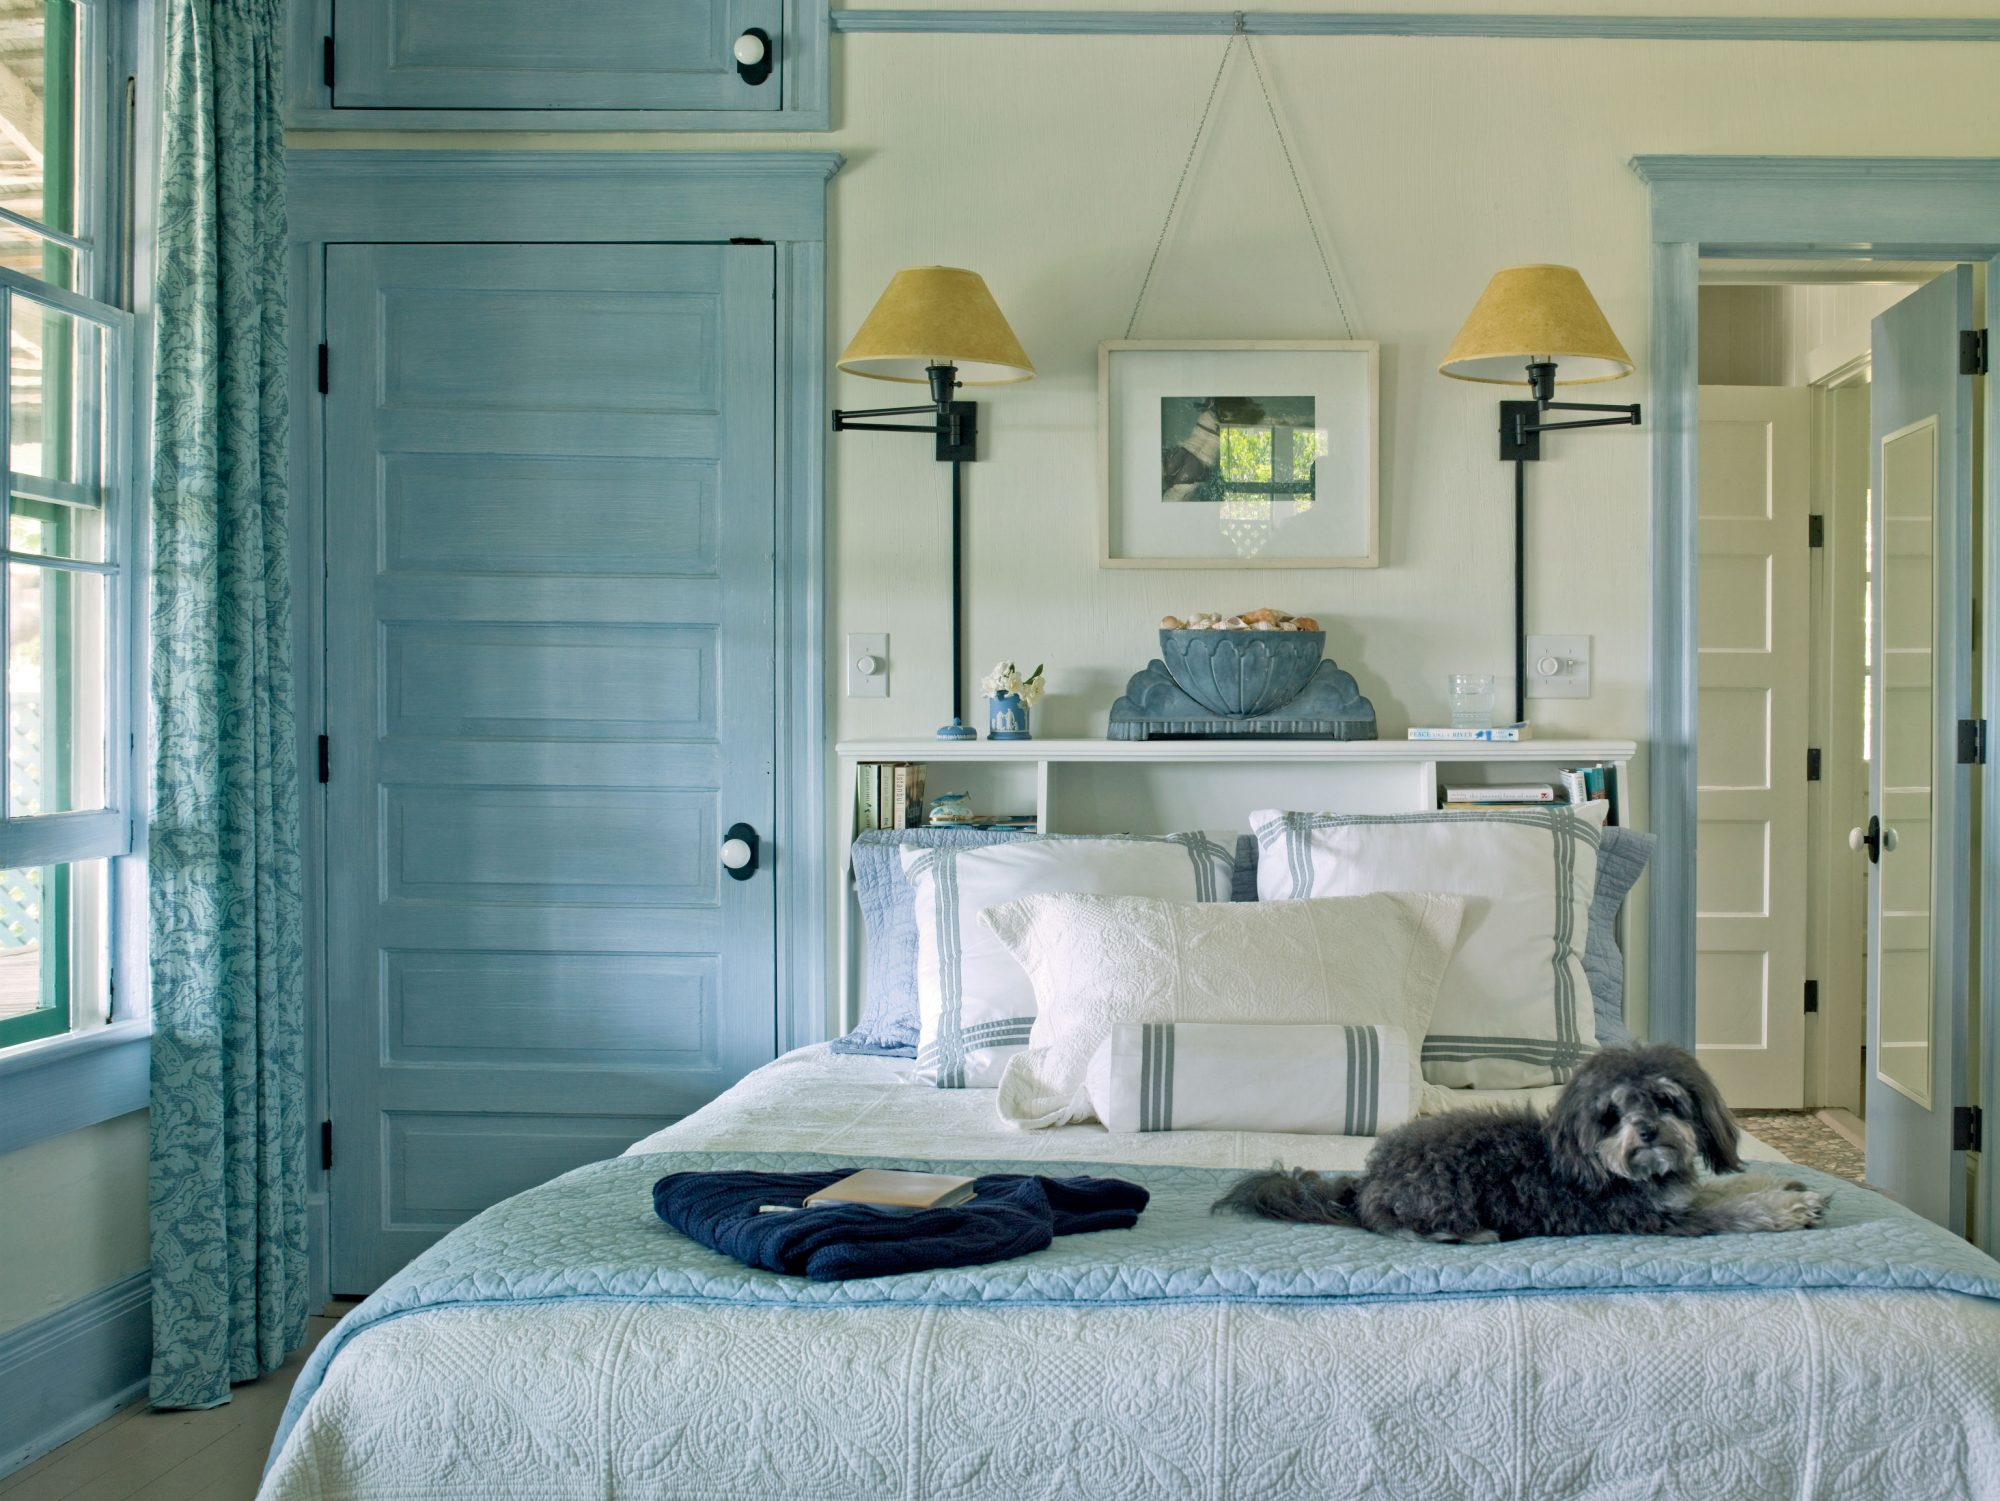 Although the master bedroom is small, the homeowners maximized their space by affixing a headboard that has plenty of shelf space in lieu of floor space-hogging bedside tables. Cool blues and whites make the room seem comforting rather than cramped.